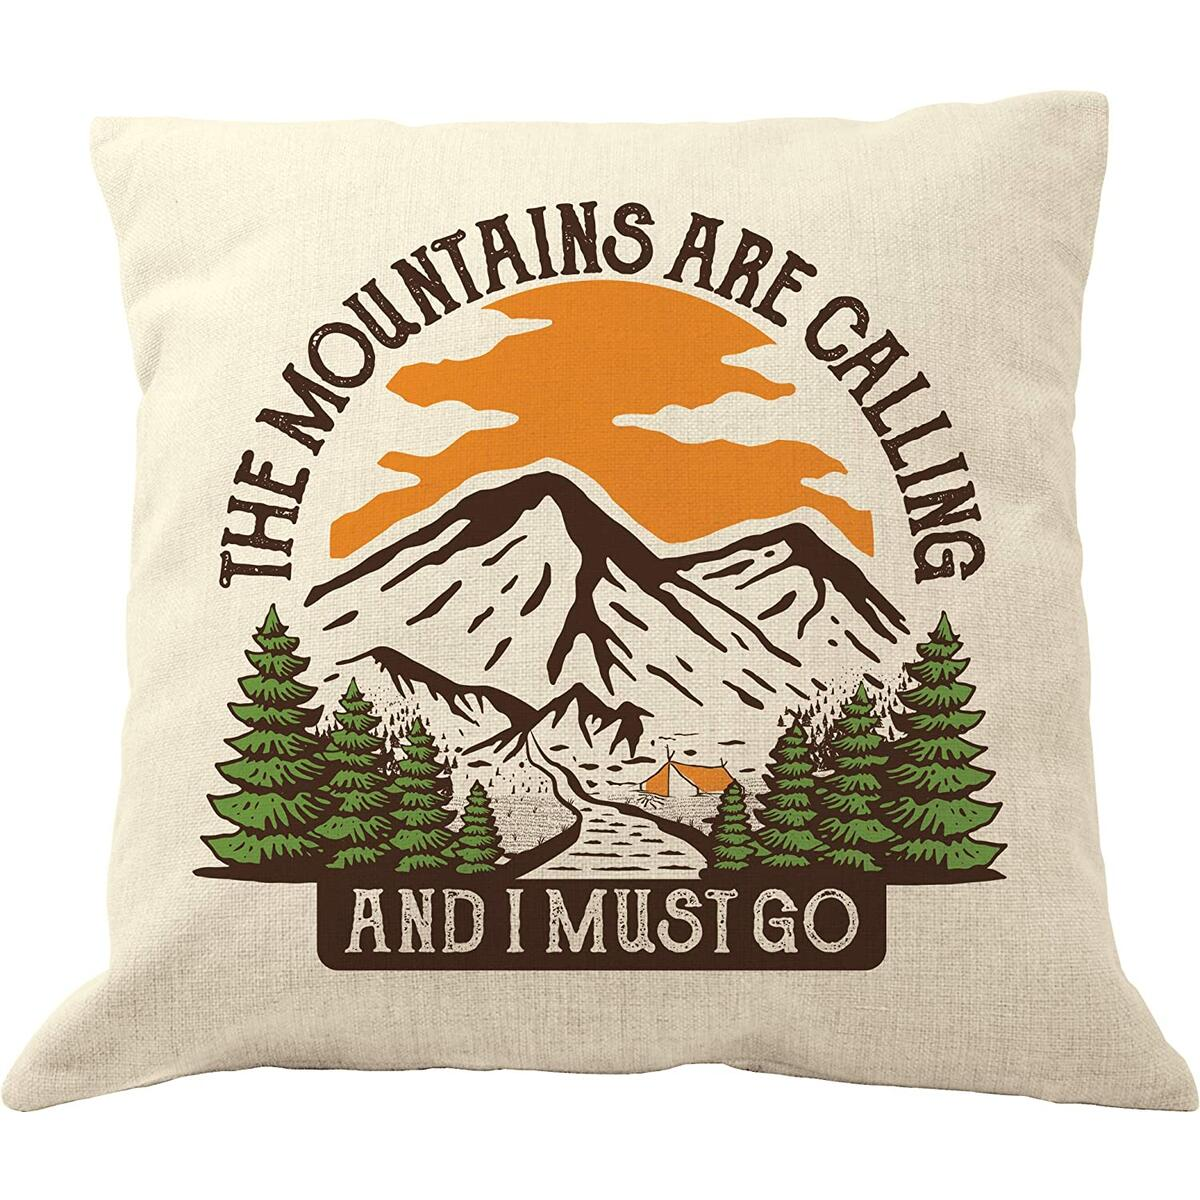 DrupsCo The Mountains are Calling Pillow Cover - 18 x 18 Camping Throw Pillow - The Mountains are Calling and I Must Go